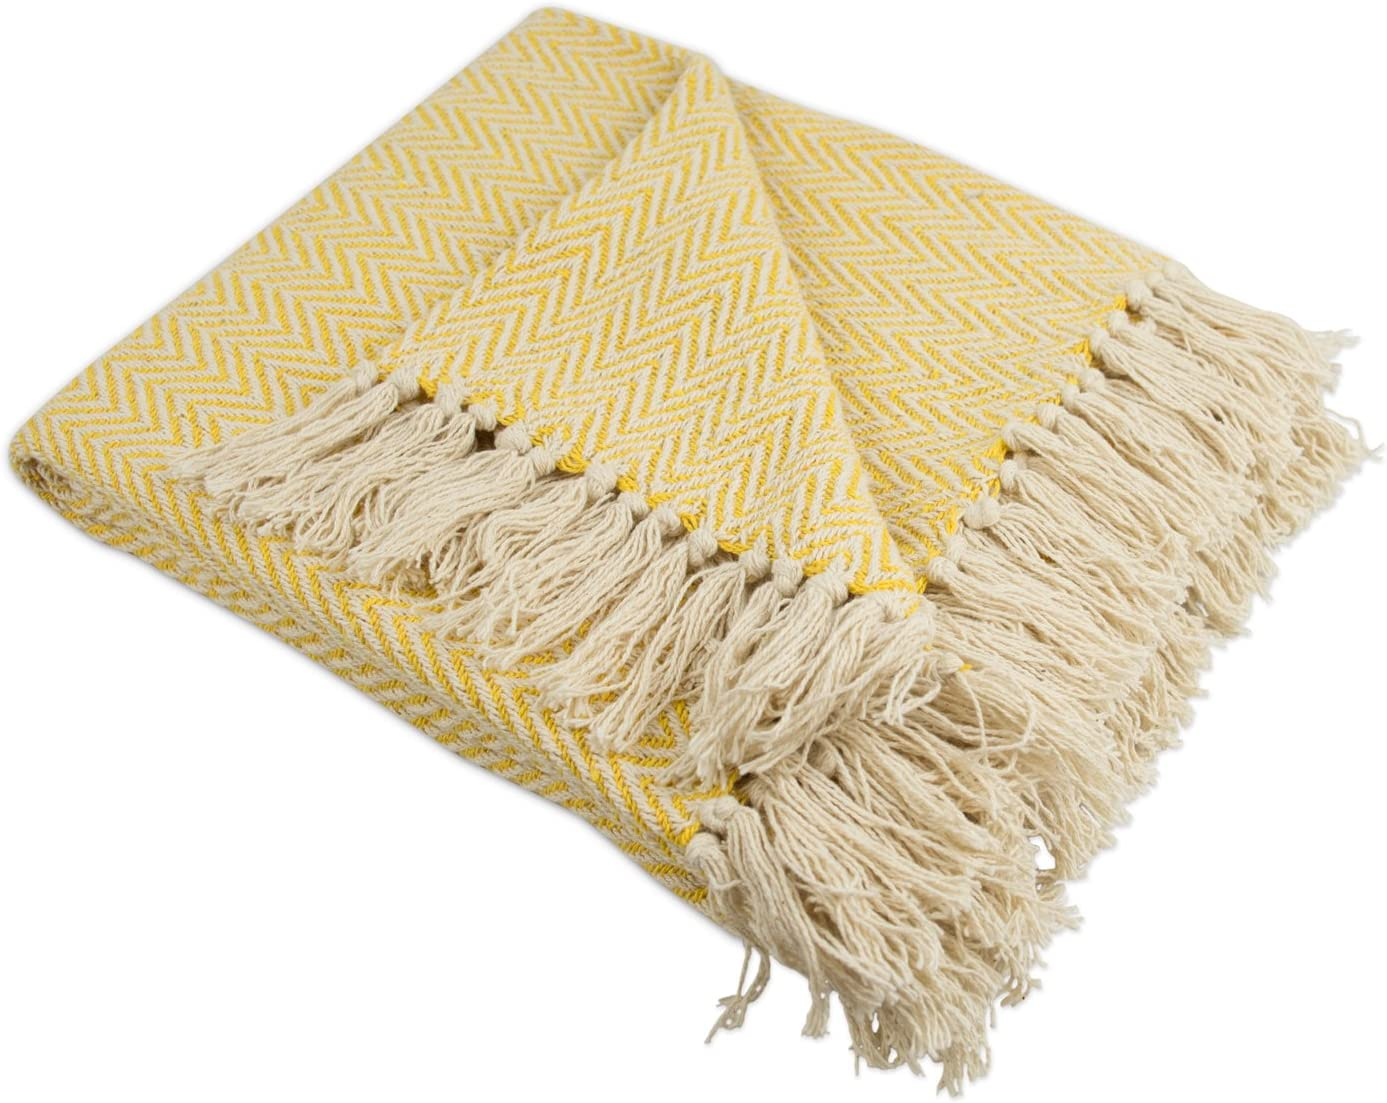 "DII Rustic Farmhouse Cotton Chevron Blanket Throw with Fringe For Chair, Couch, Picnic, Camping, Beach, & Everyday Use , 50 x 60"" - Mini Chevron Marigold"